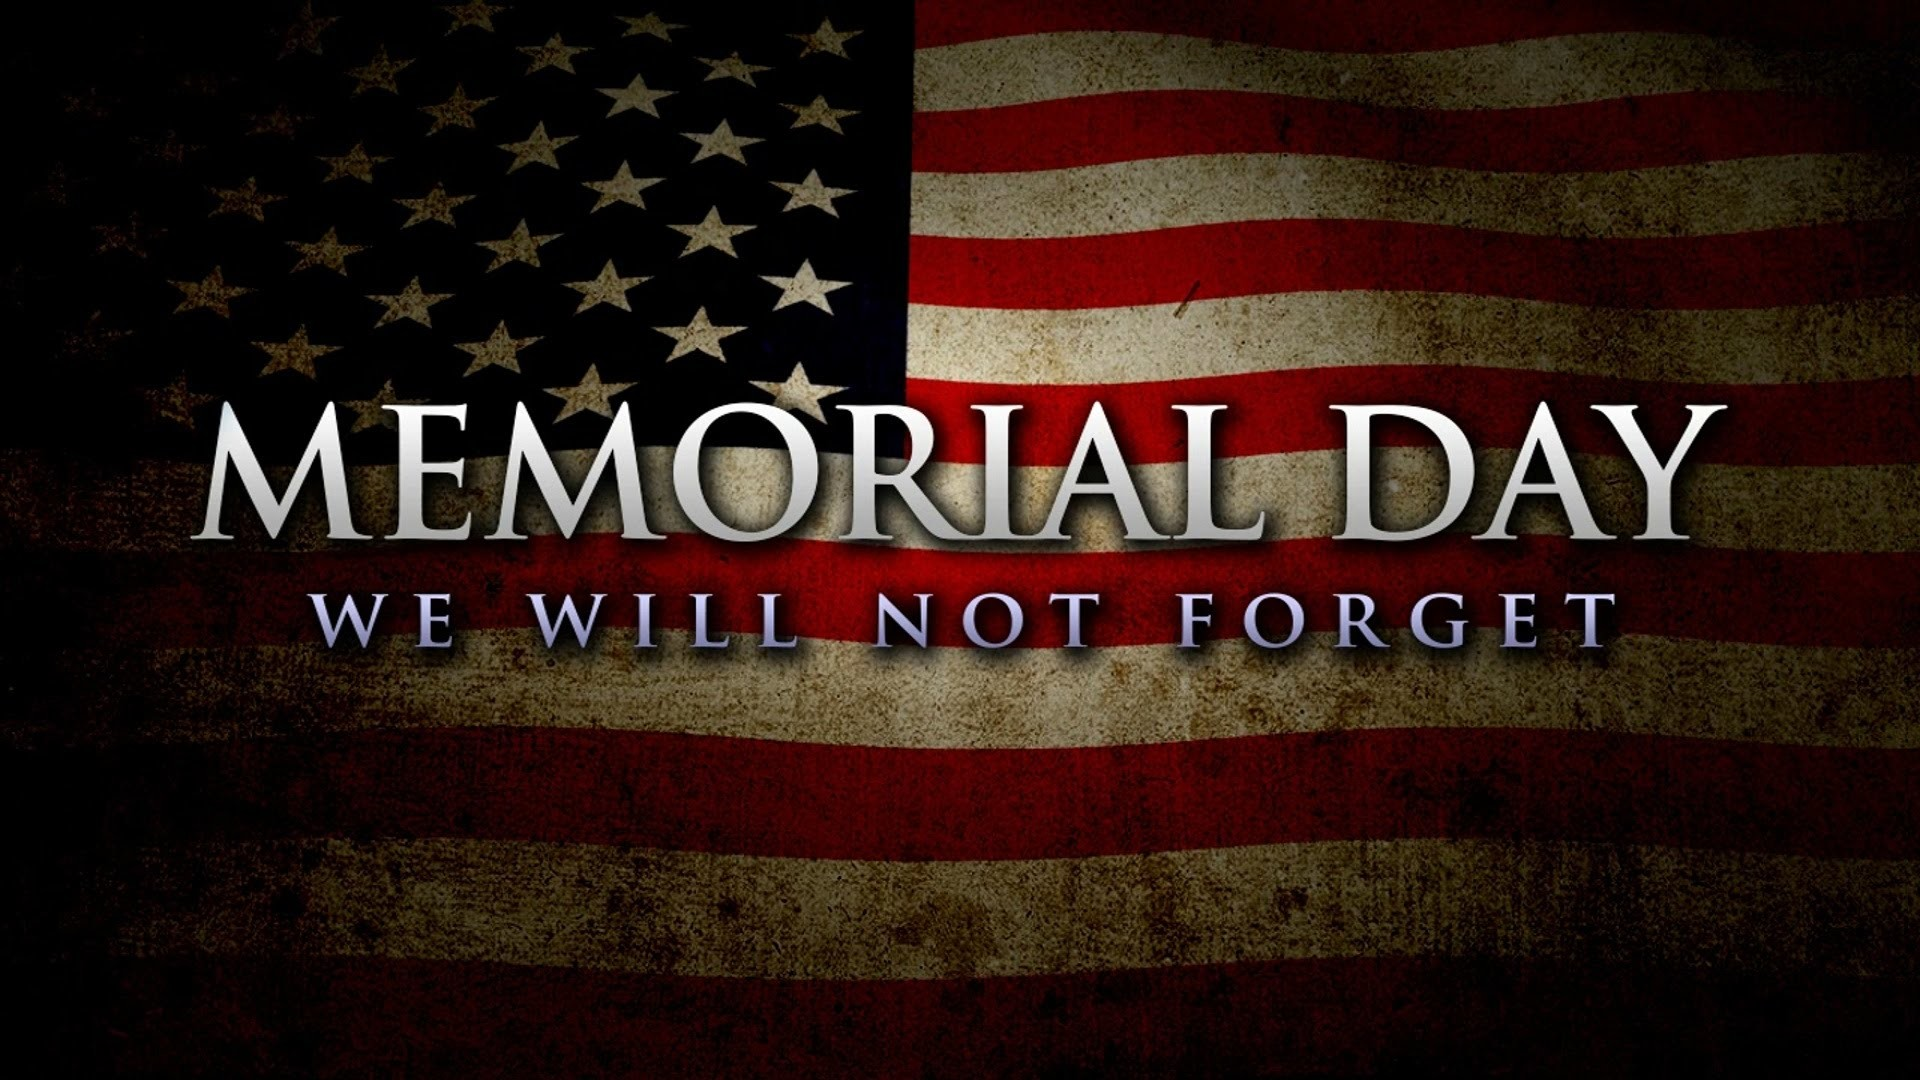 Wallpapers for Memorial Day